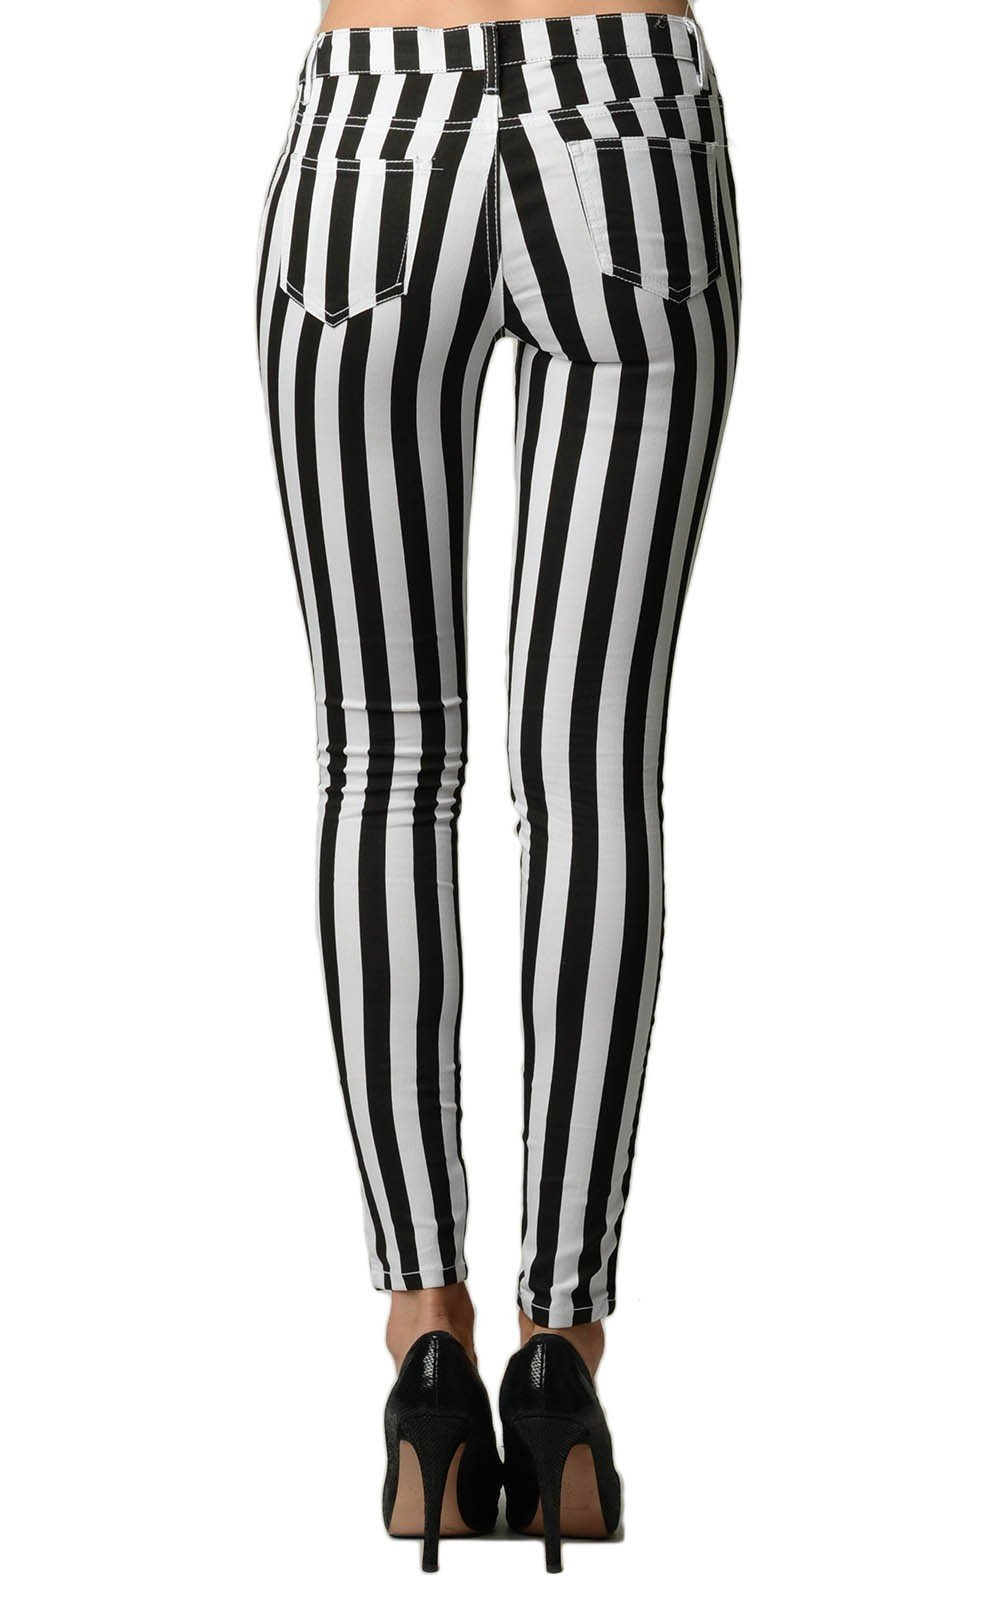 Stripped Black and White Skinny Jeans - Home Goods Galore